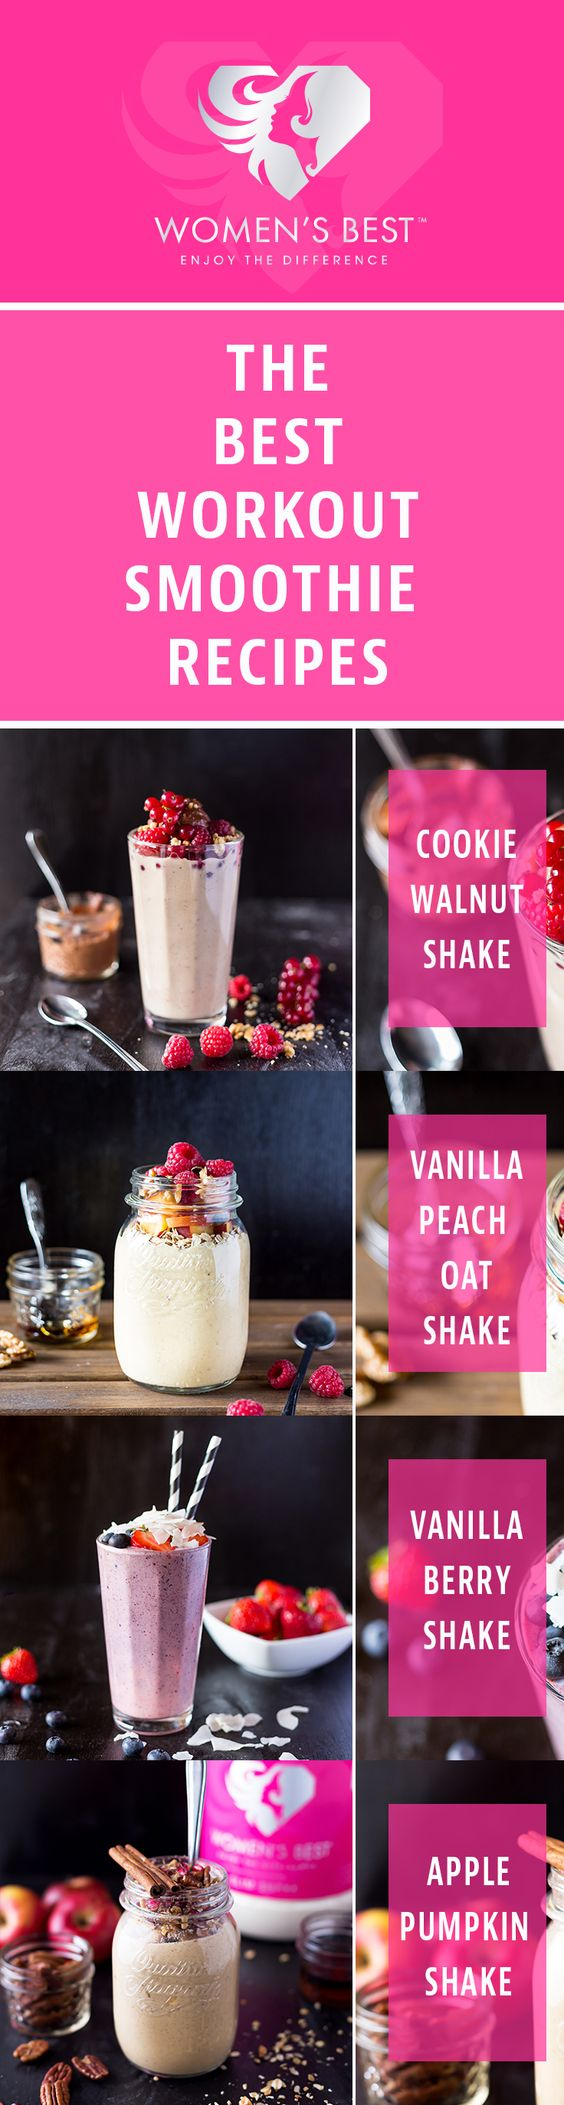 The BEST weight loss shake for women! #fitness - Eat Clean - Pinterest ...